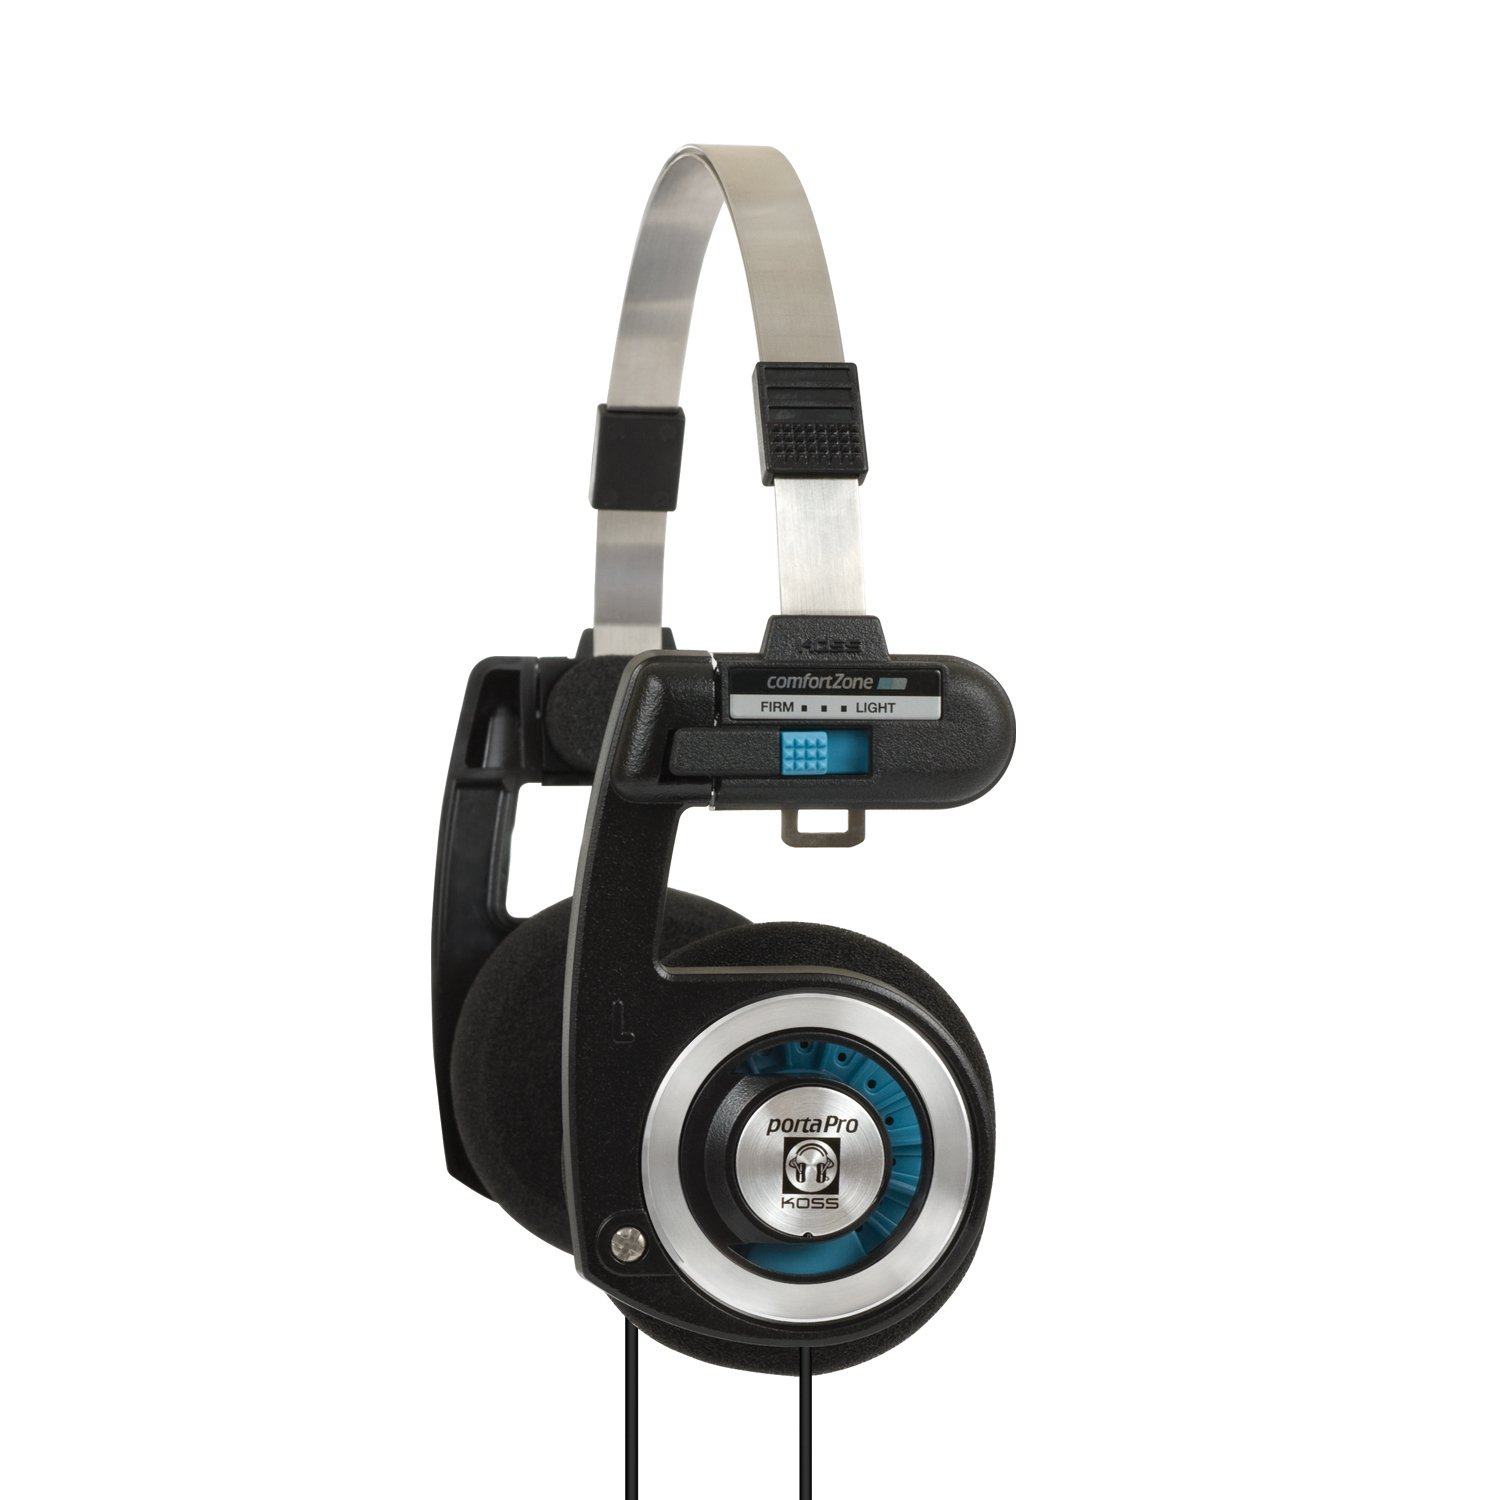 Koss Porta Pro On Ear Headphones with Case, Black/Silver by Koss